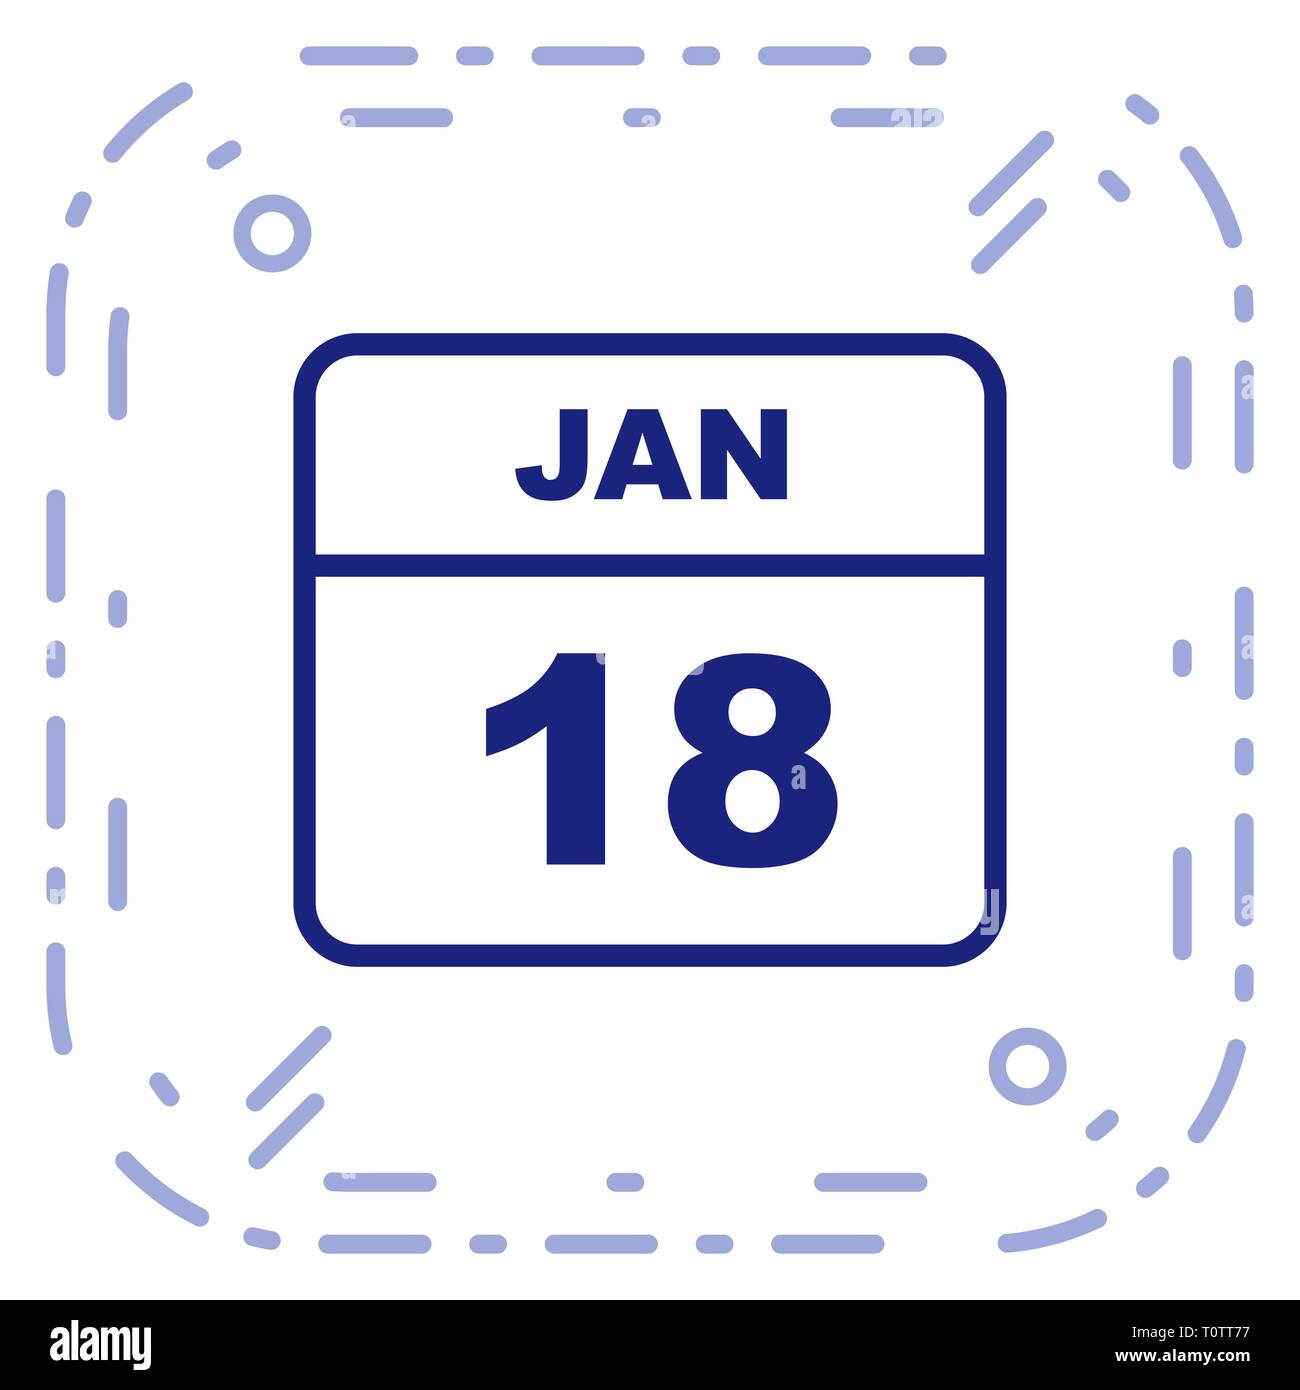 January 18th Date on a Single Day Calendar - Stock Image